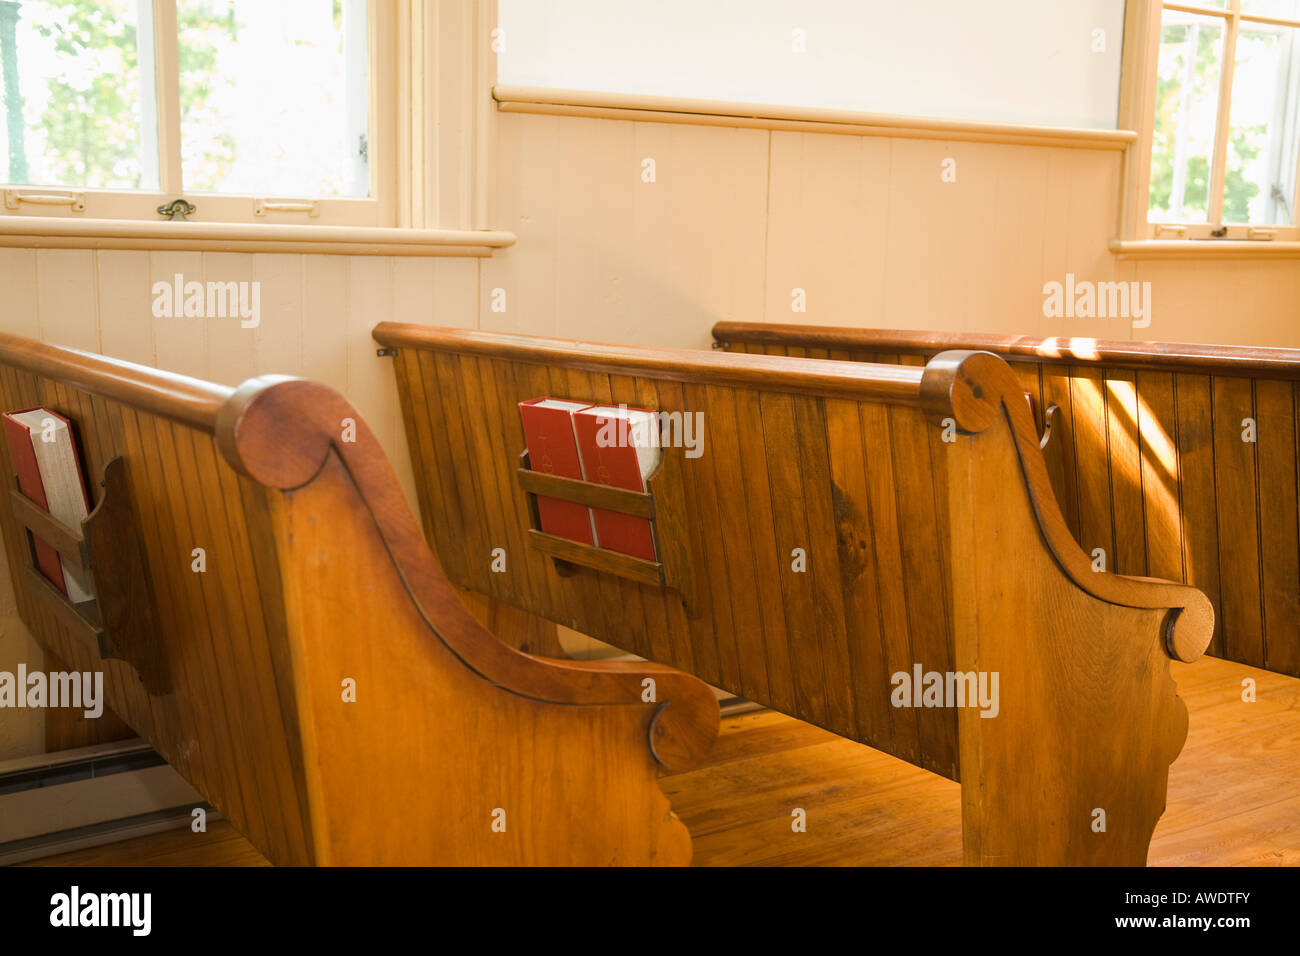 ILLINOIS Rockford Hymnbooks in rack on back of wooden pew historic building Midway Village Community Church - Stock Image